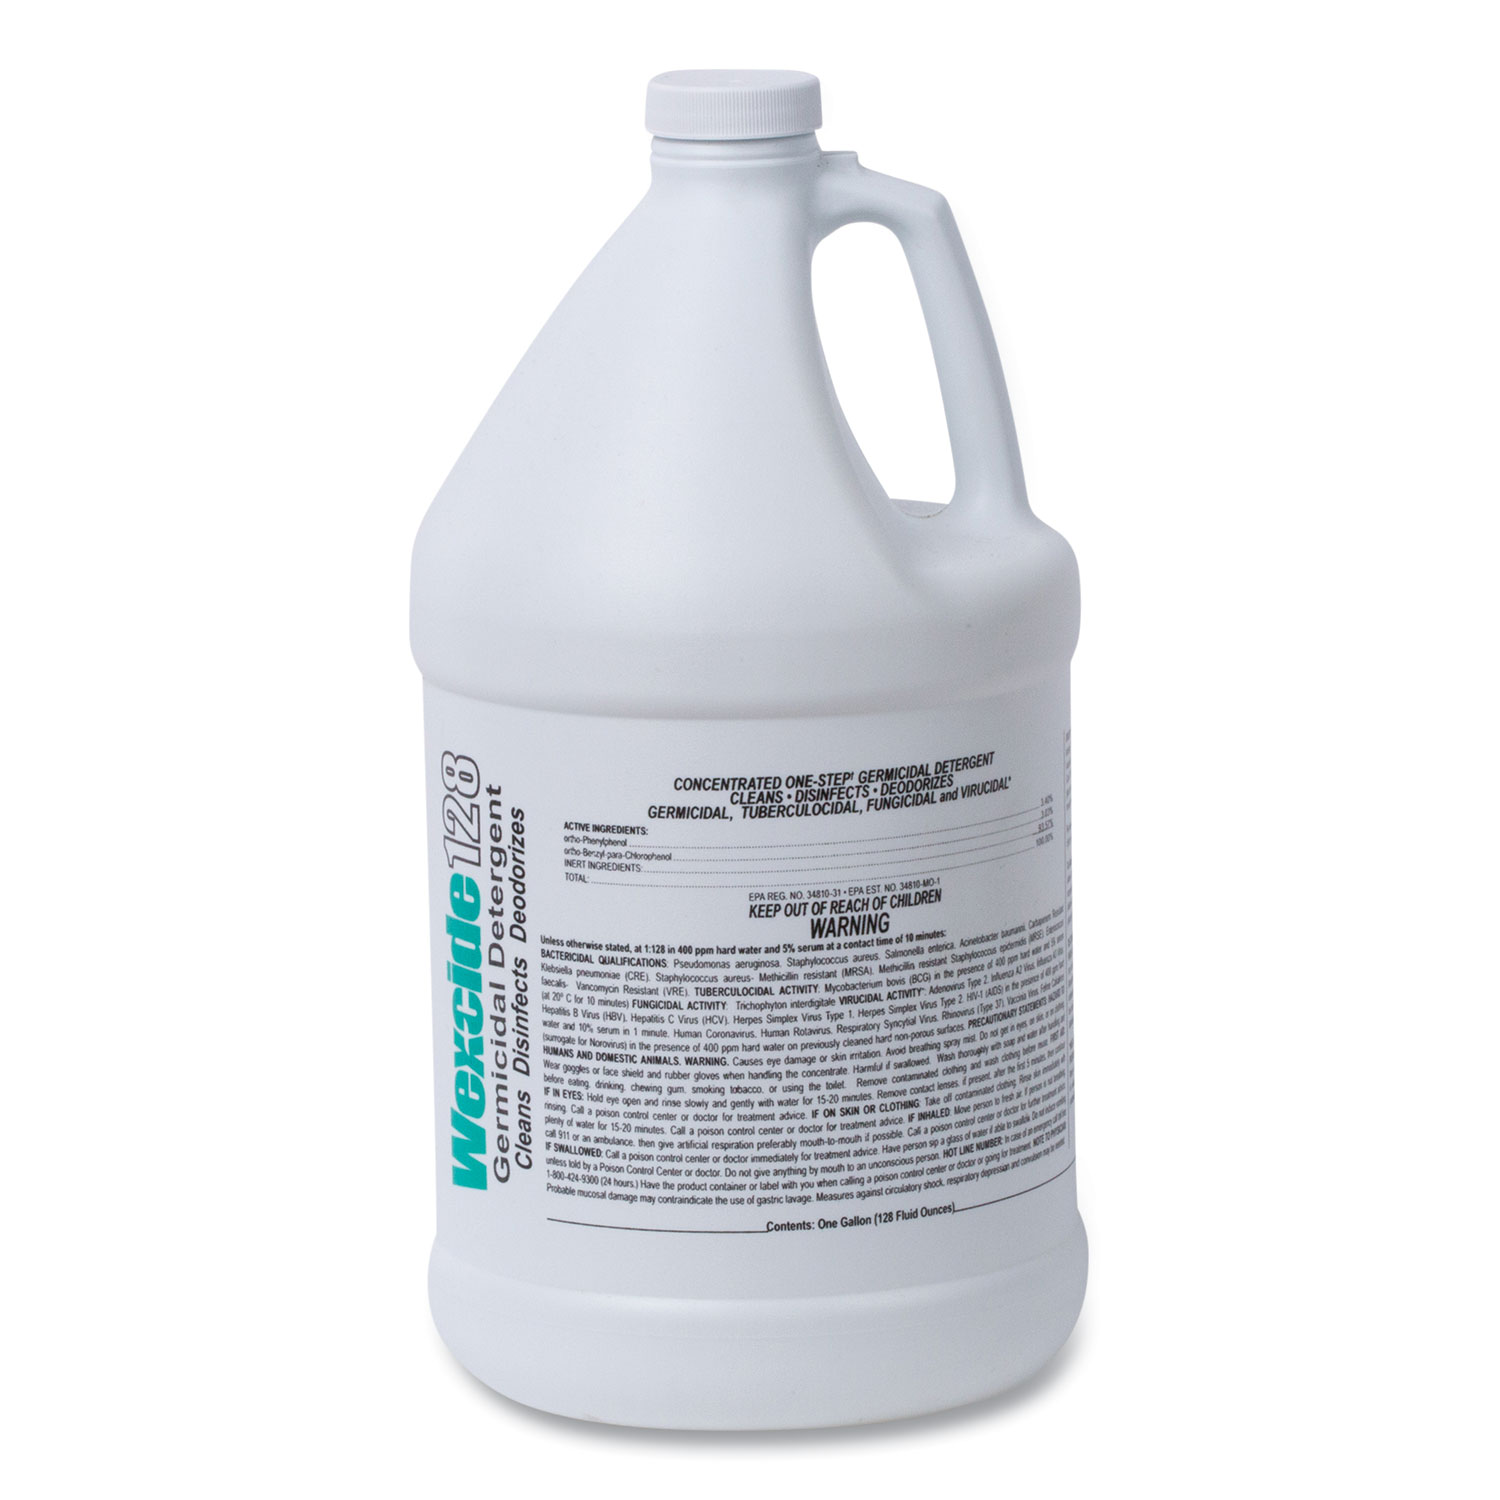 Wexford Labs Wex-Cide Concentrated Disinfecting Cleaner, Nectar Scent, 128 oz Bottle, 4/Carton